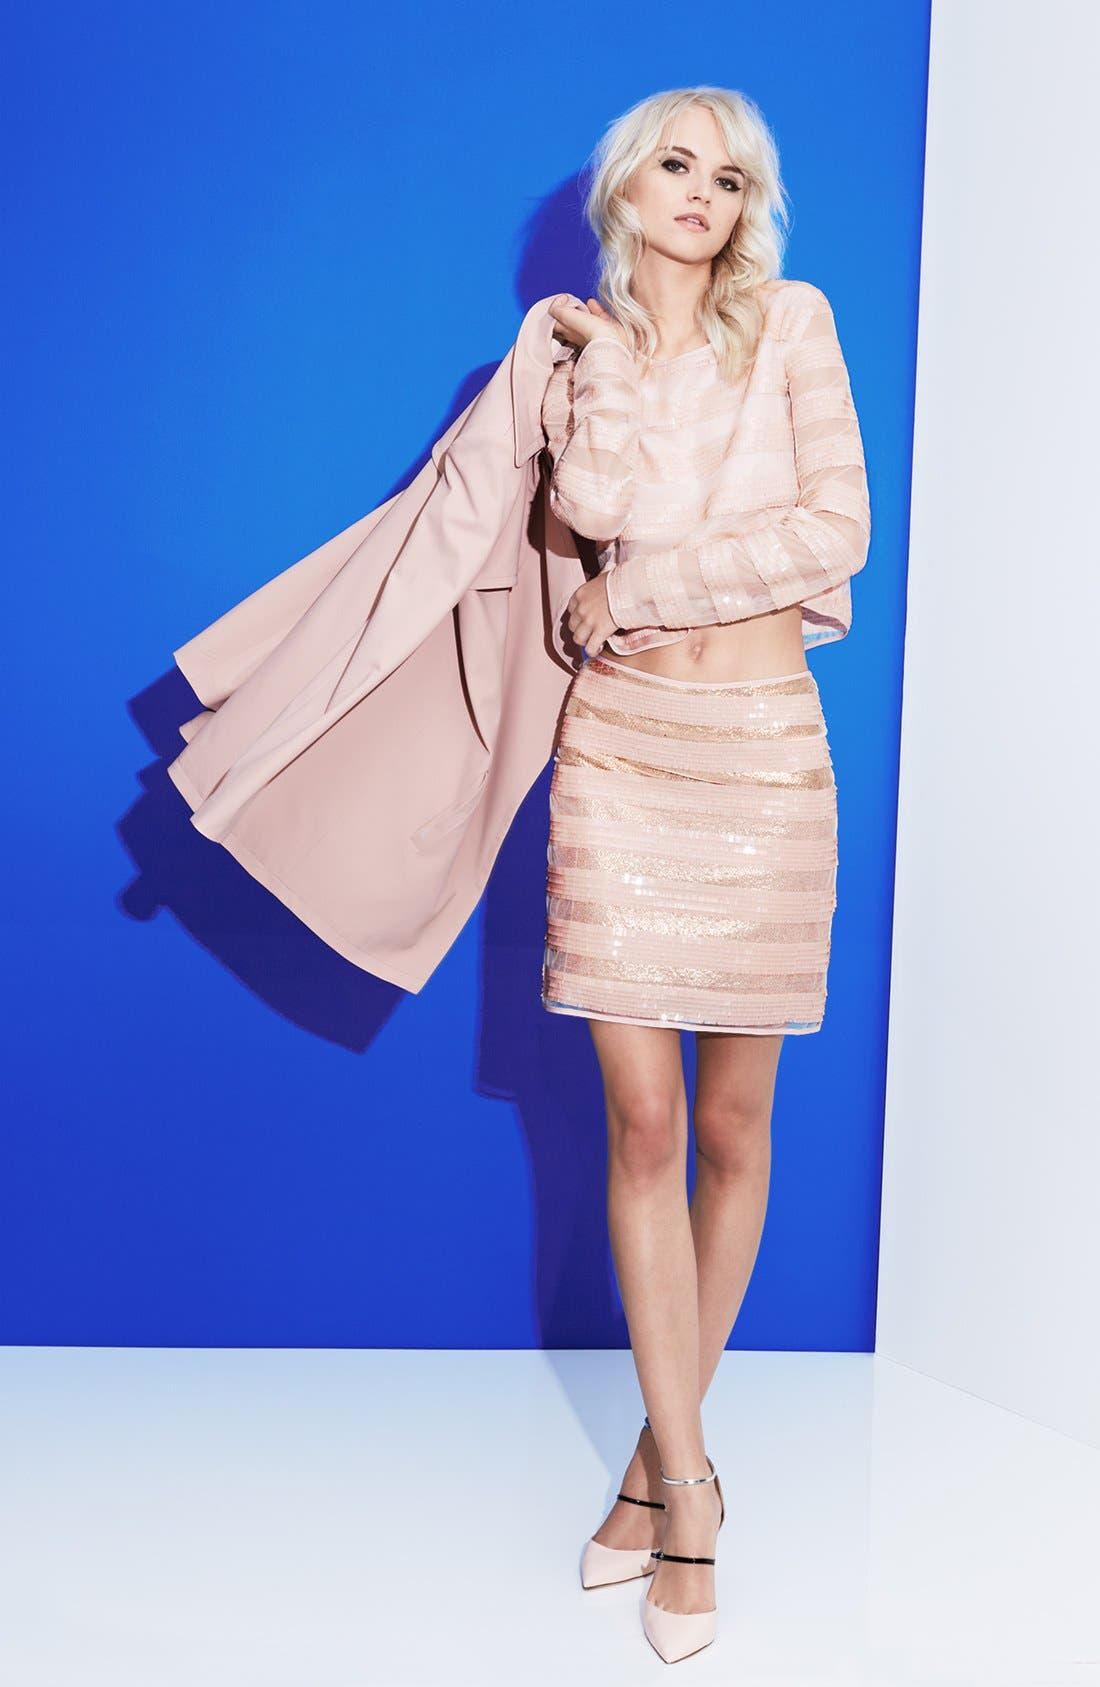 Main Image - Mural Trench Coat, MINKPINK Top & Skirt